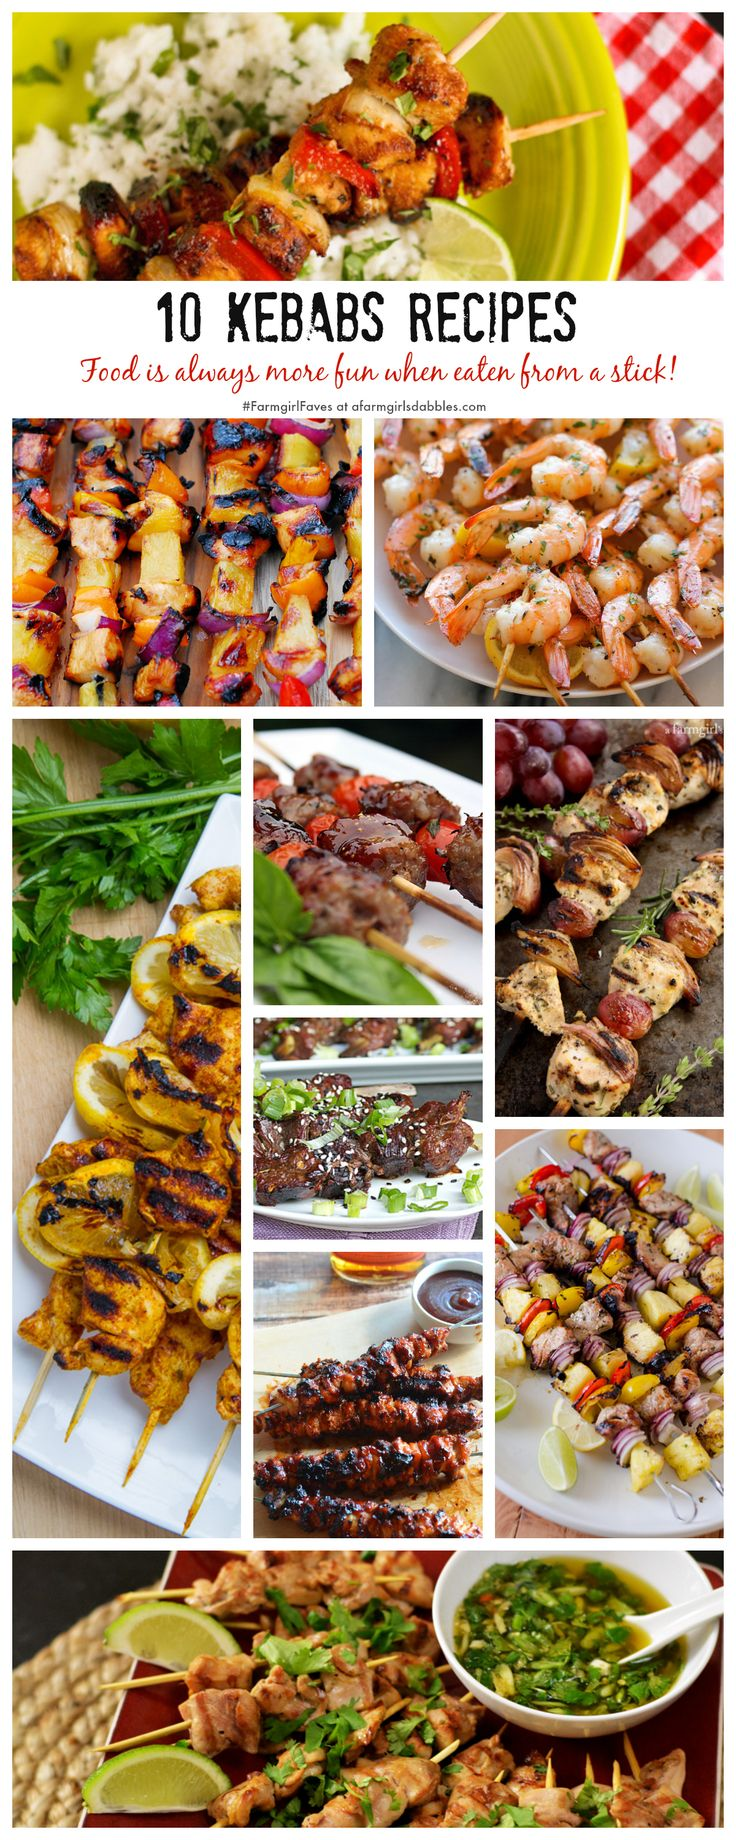 10 Kebabs Recipes, because food is always more fun when eaten from a stick! - afarmgirlsdabbles.com #kebabs #skewers #grilling